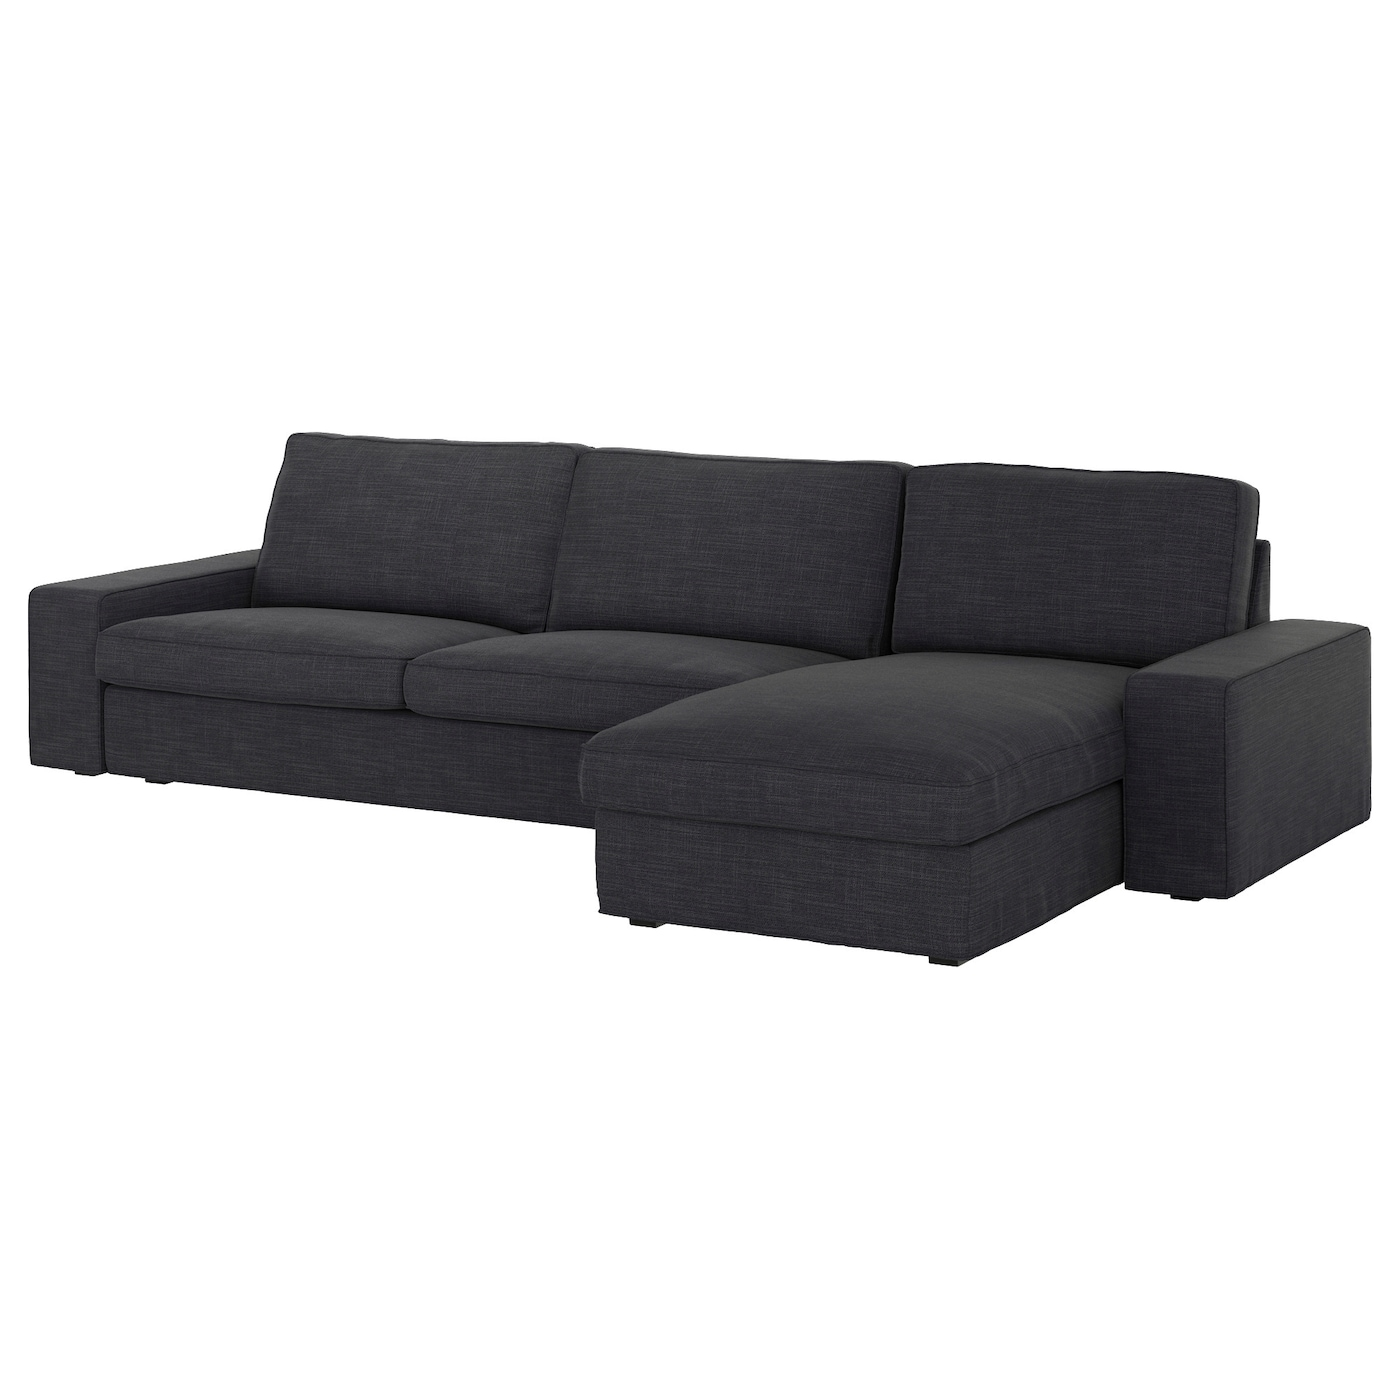 Kivik three seat sofa and chaise longue hillared for Chaise longue sofa